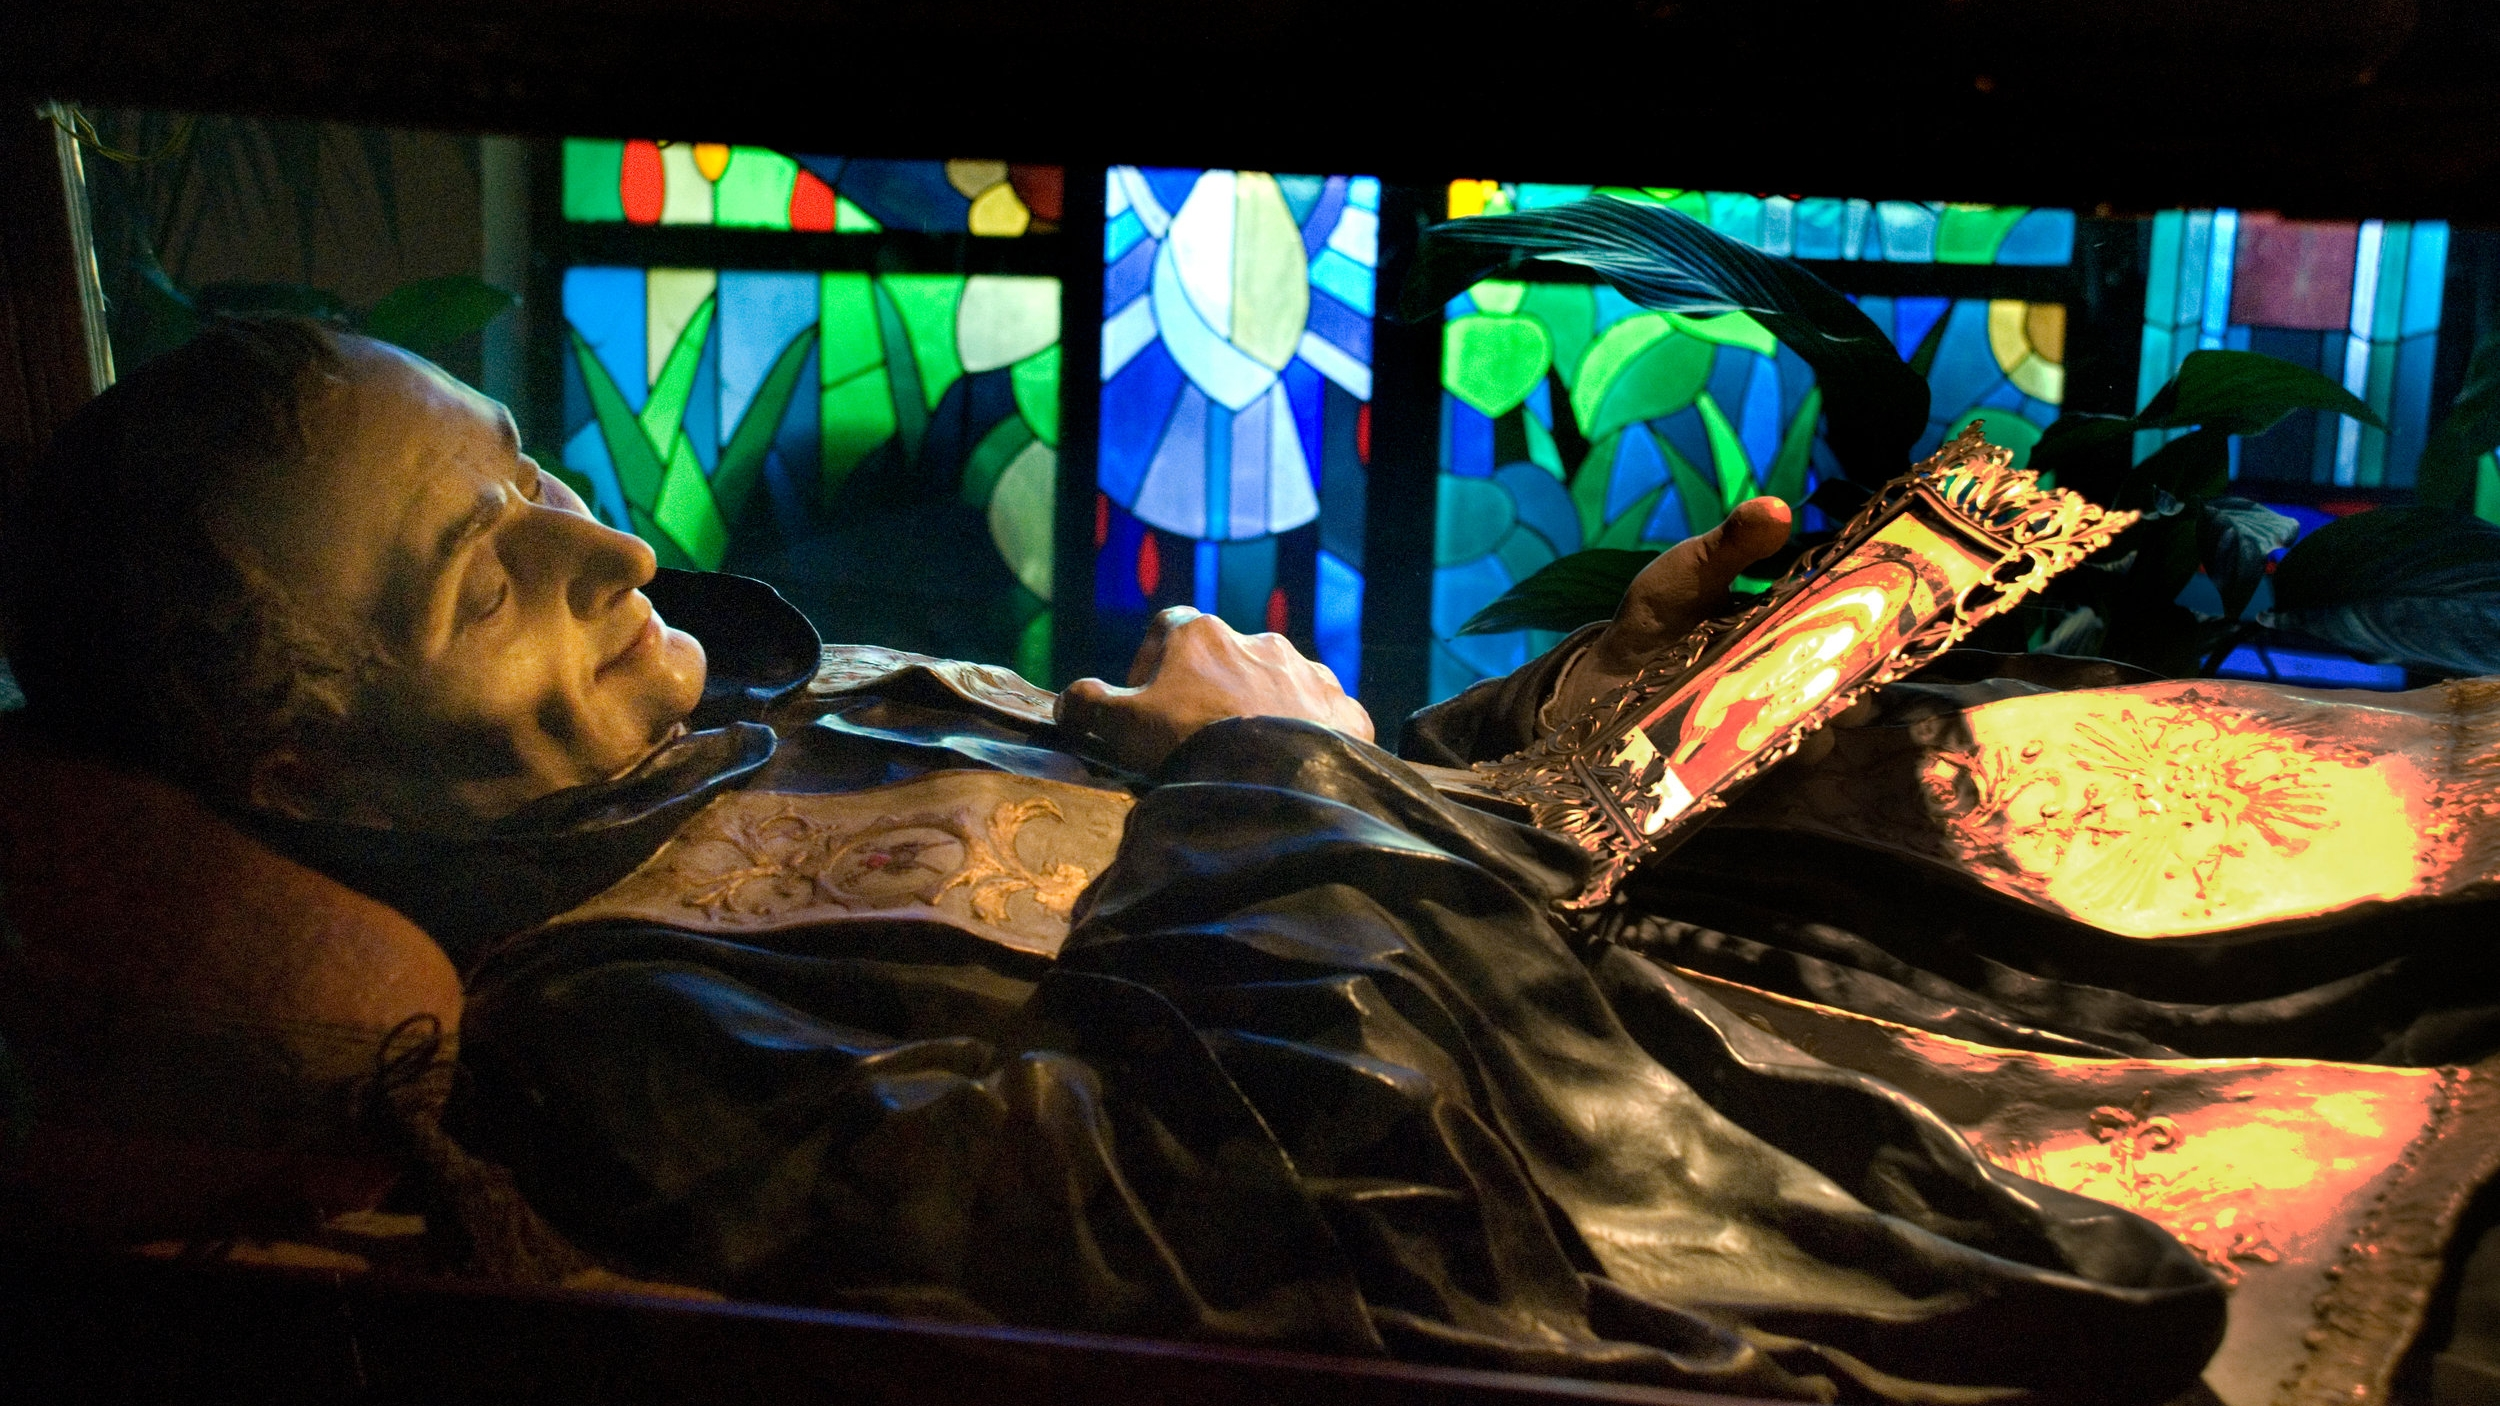 Genazzano Italy--the body of Blessed Stephen Bellesini in his current state on display at the Church of Our Mother of Good Counsel. Photo by Kevin Salemme.